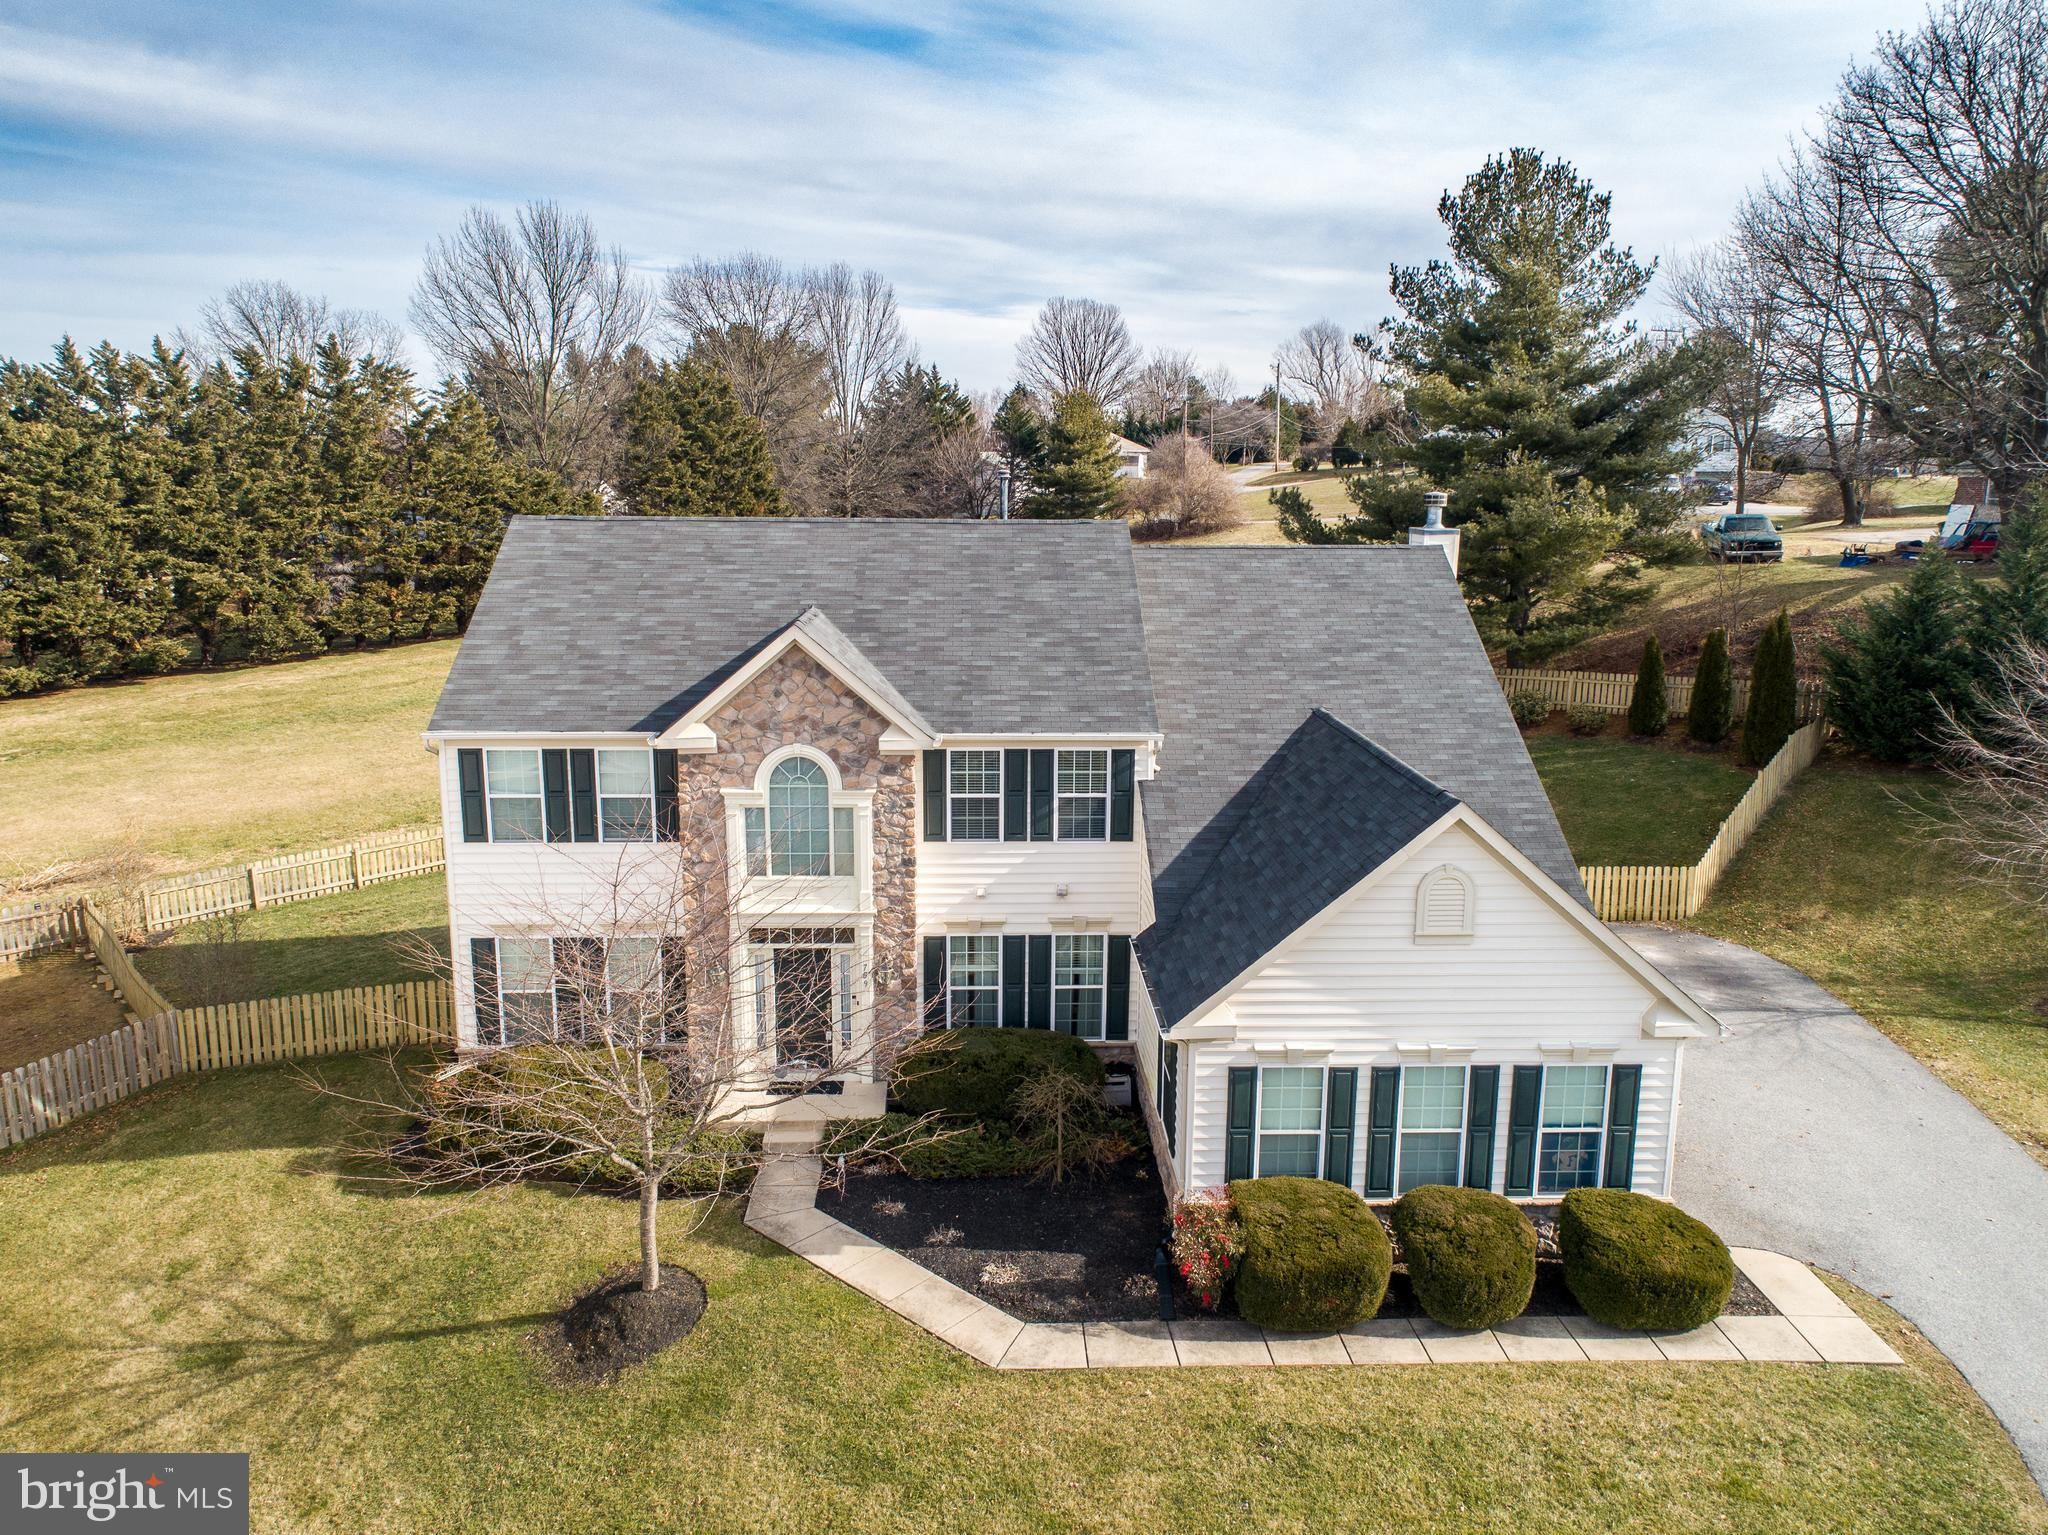 709 LOWER FIELD CIRCLE, WESTMINSTER, MD 21158